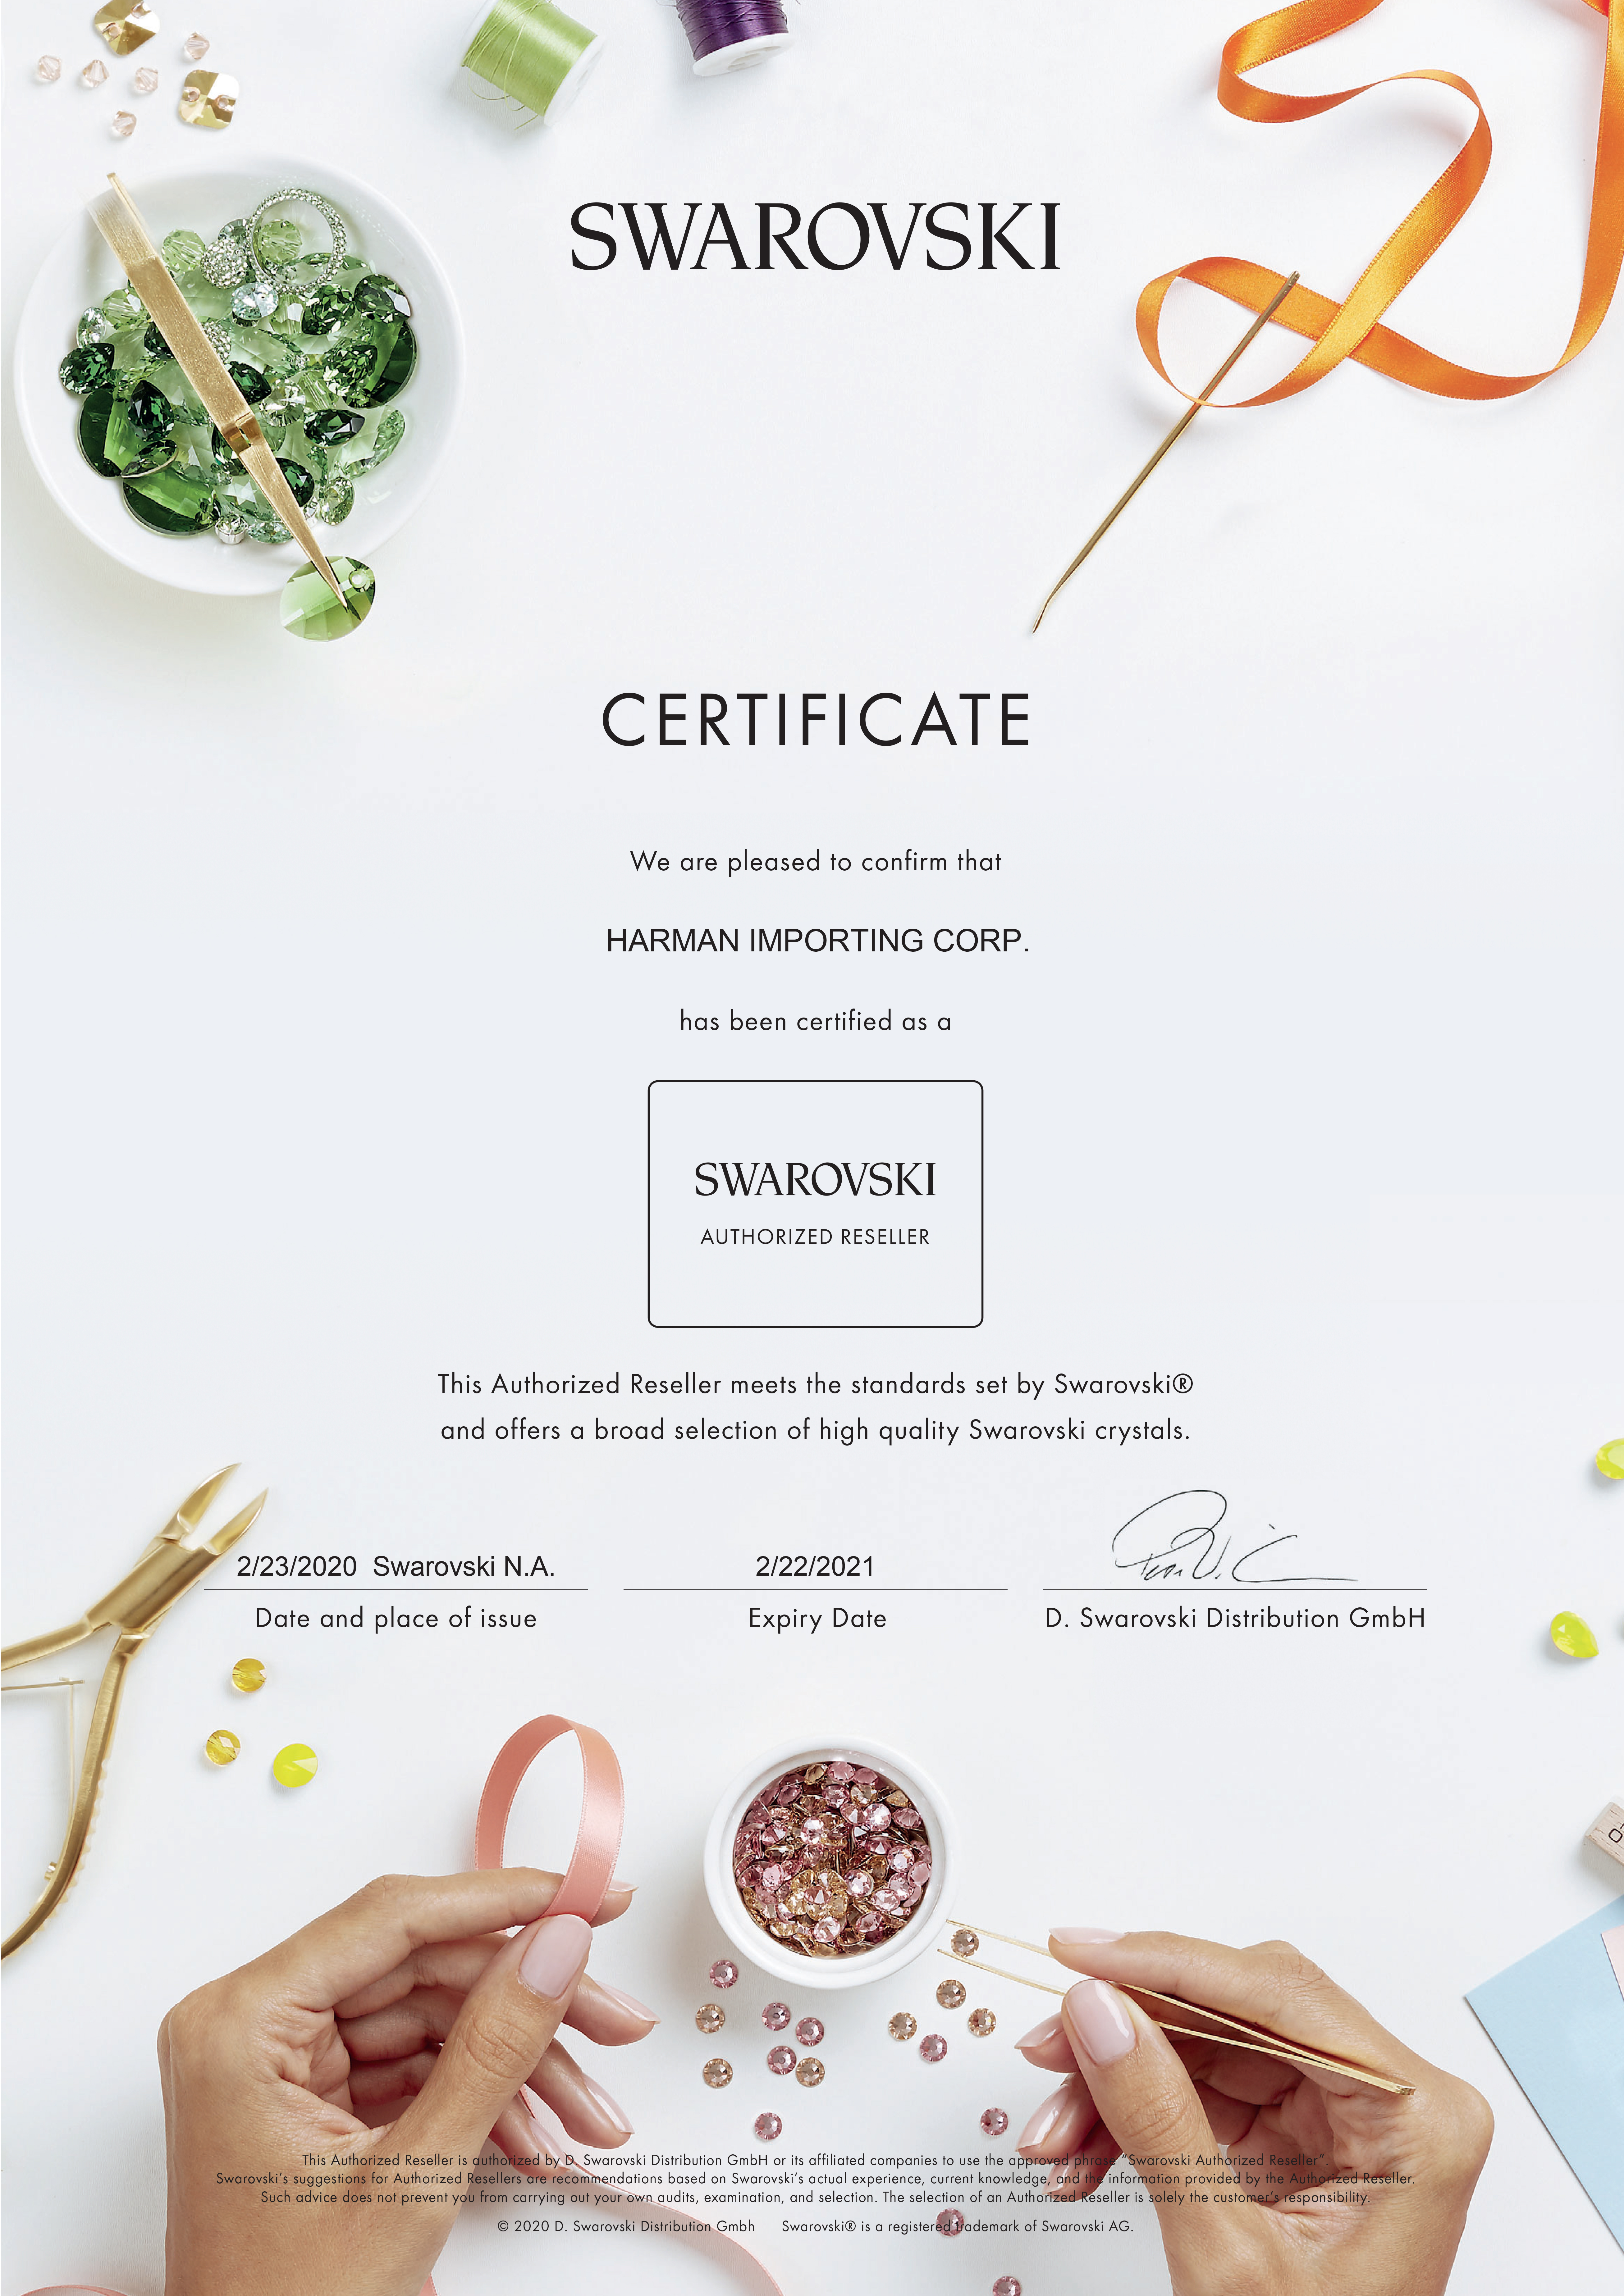 Official Swarovski Authorized Reseller Certificate reads Har-Man Importing meets the highest standards set by Swarovski and has therefore been certified as a Swarovski Authorized Reseller